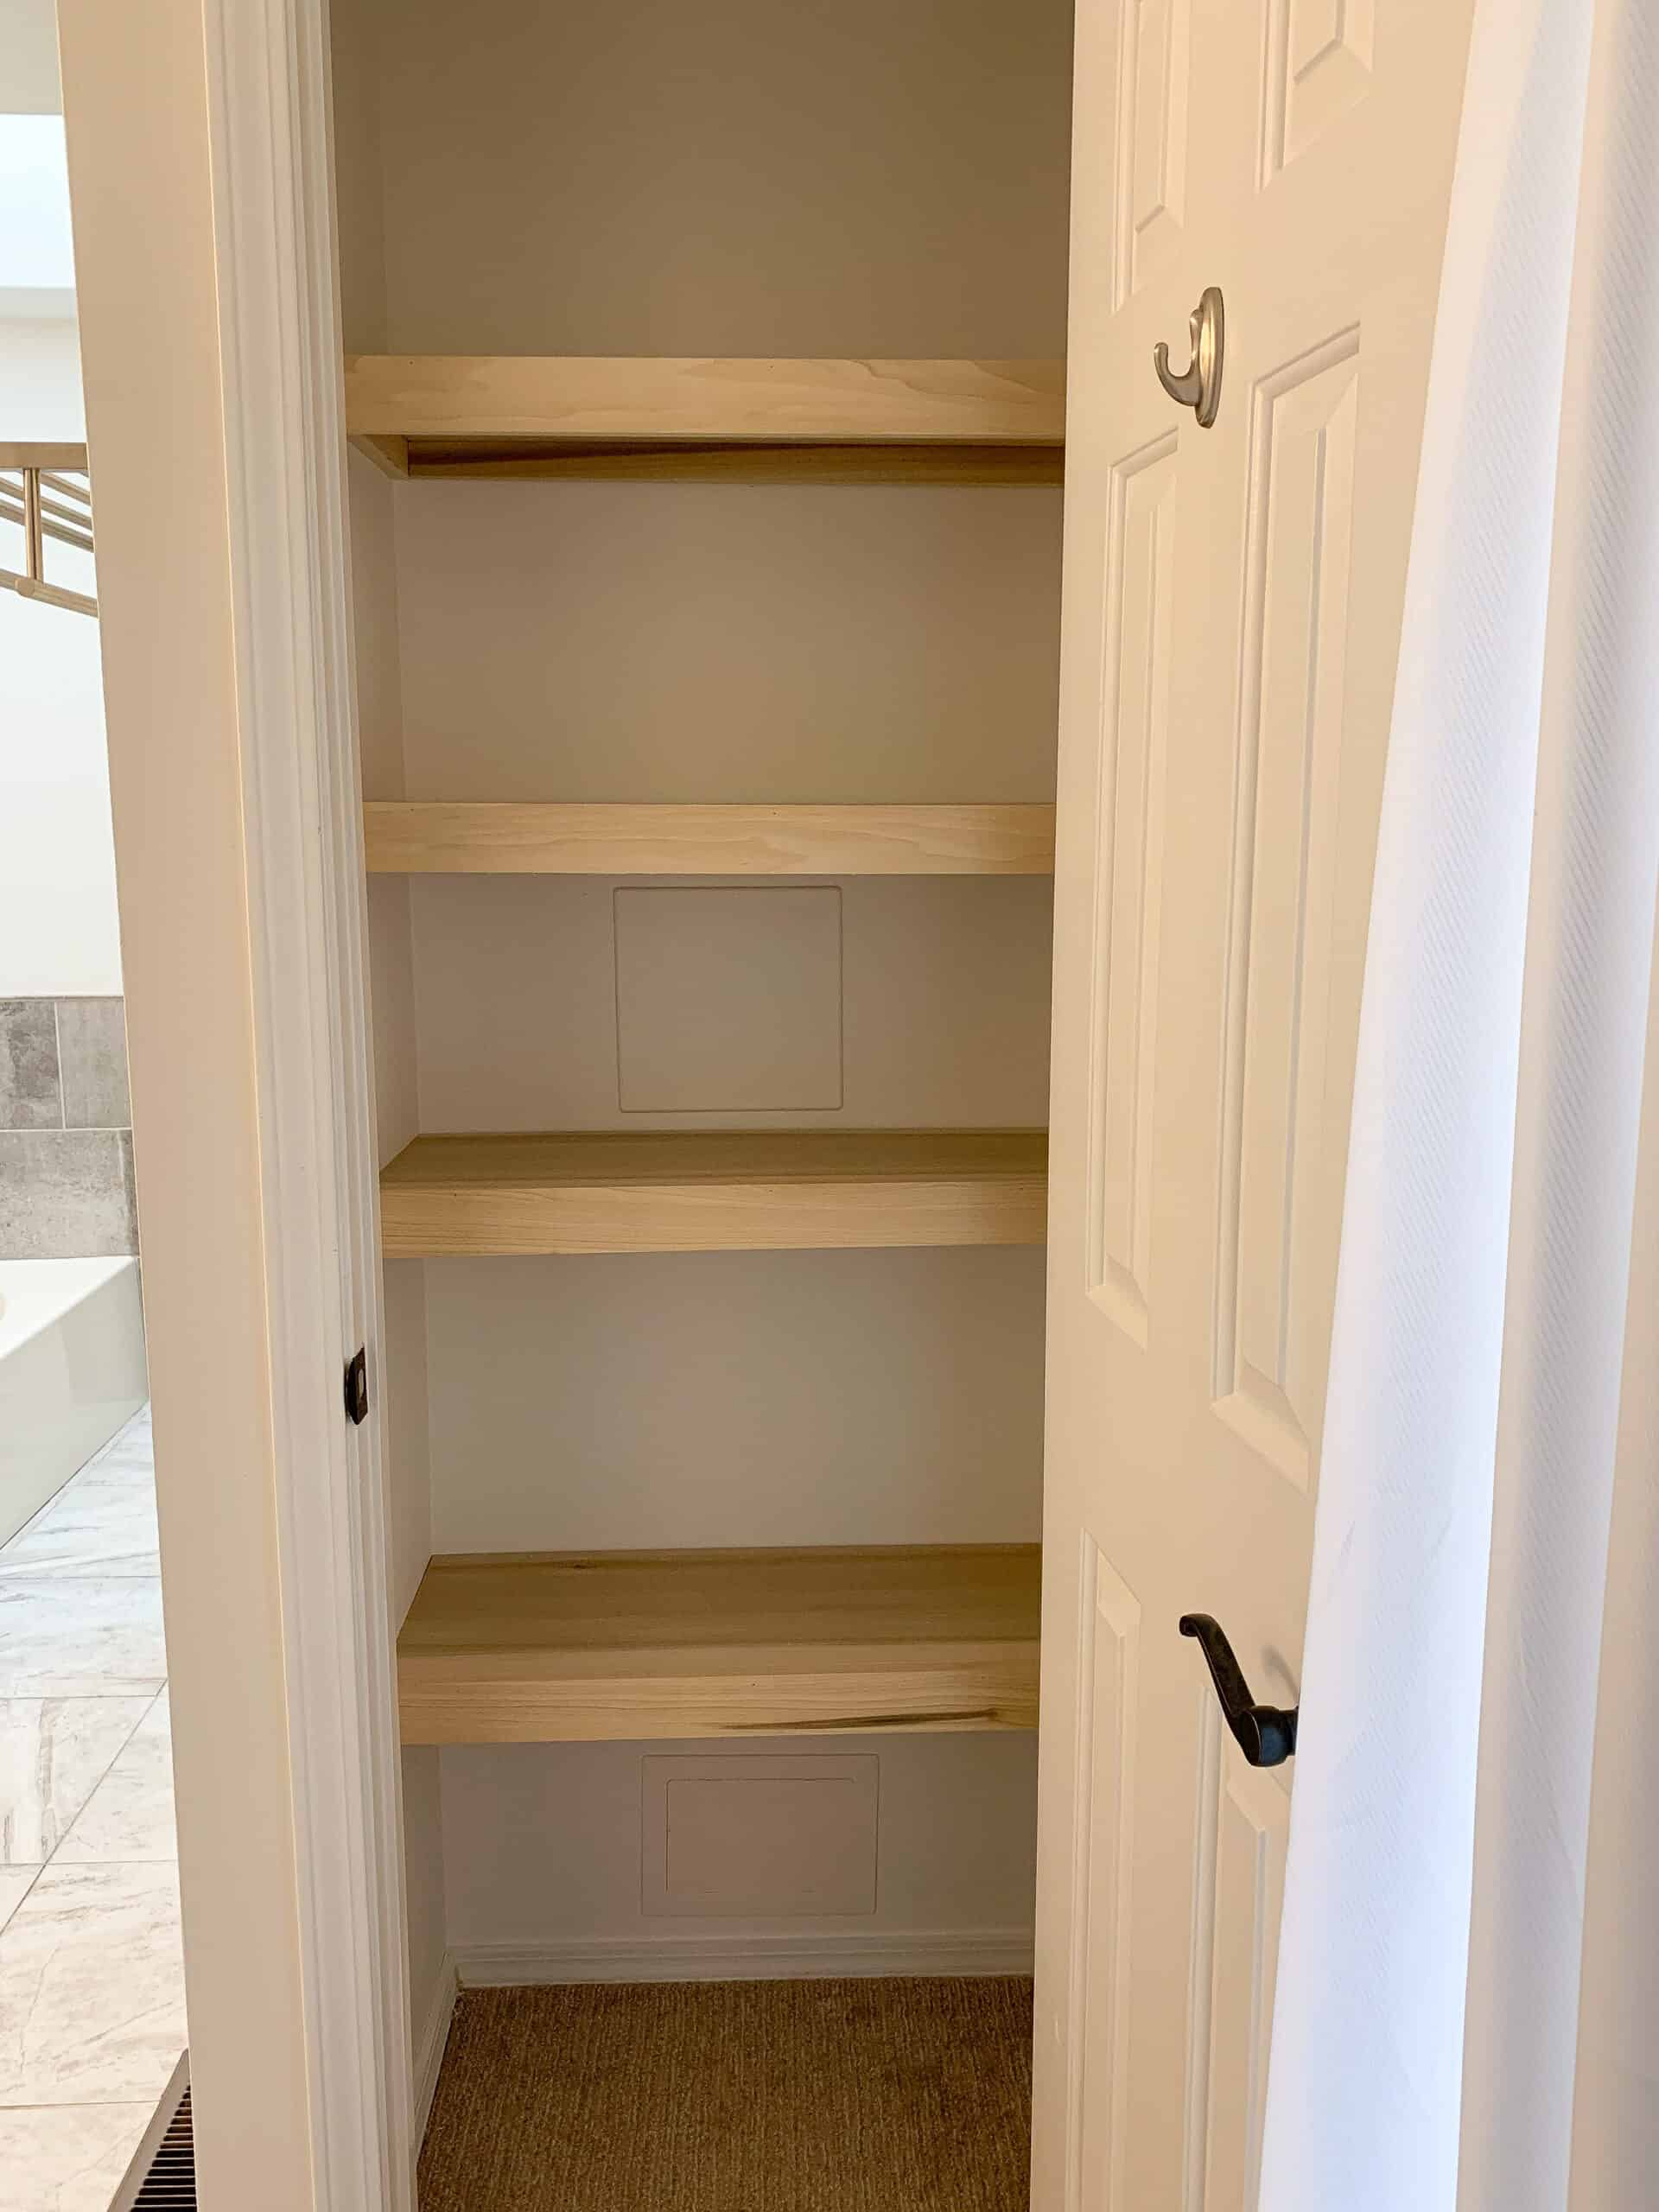 Linen closet with wood shelves